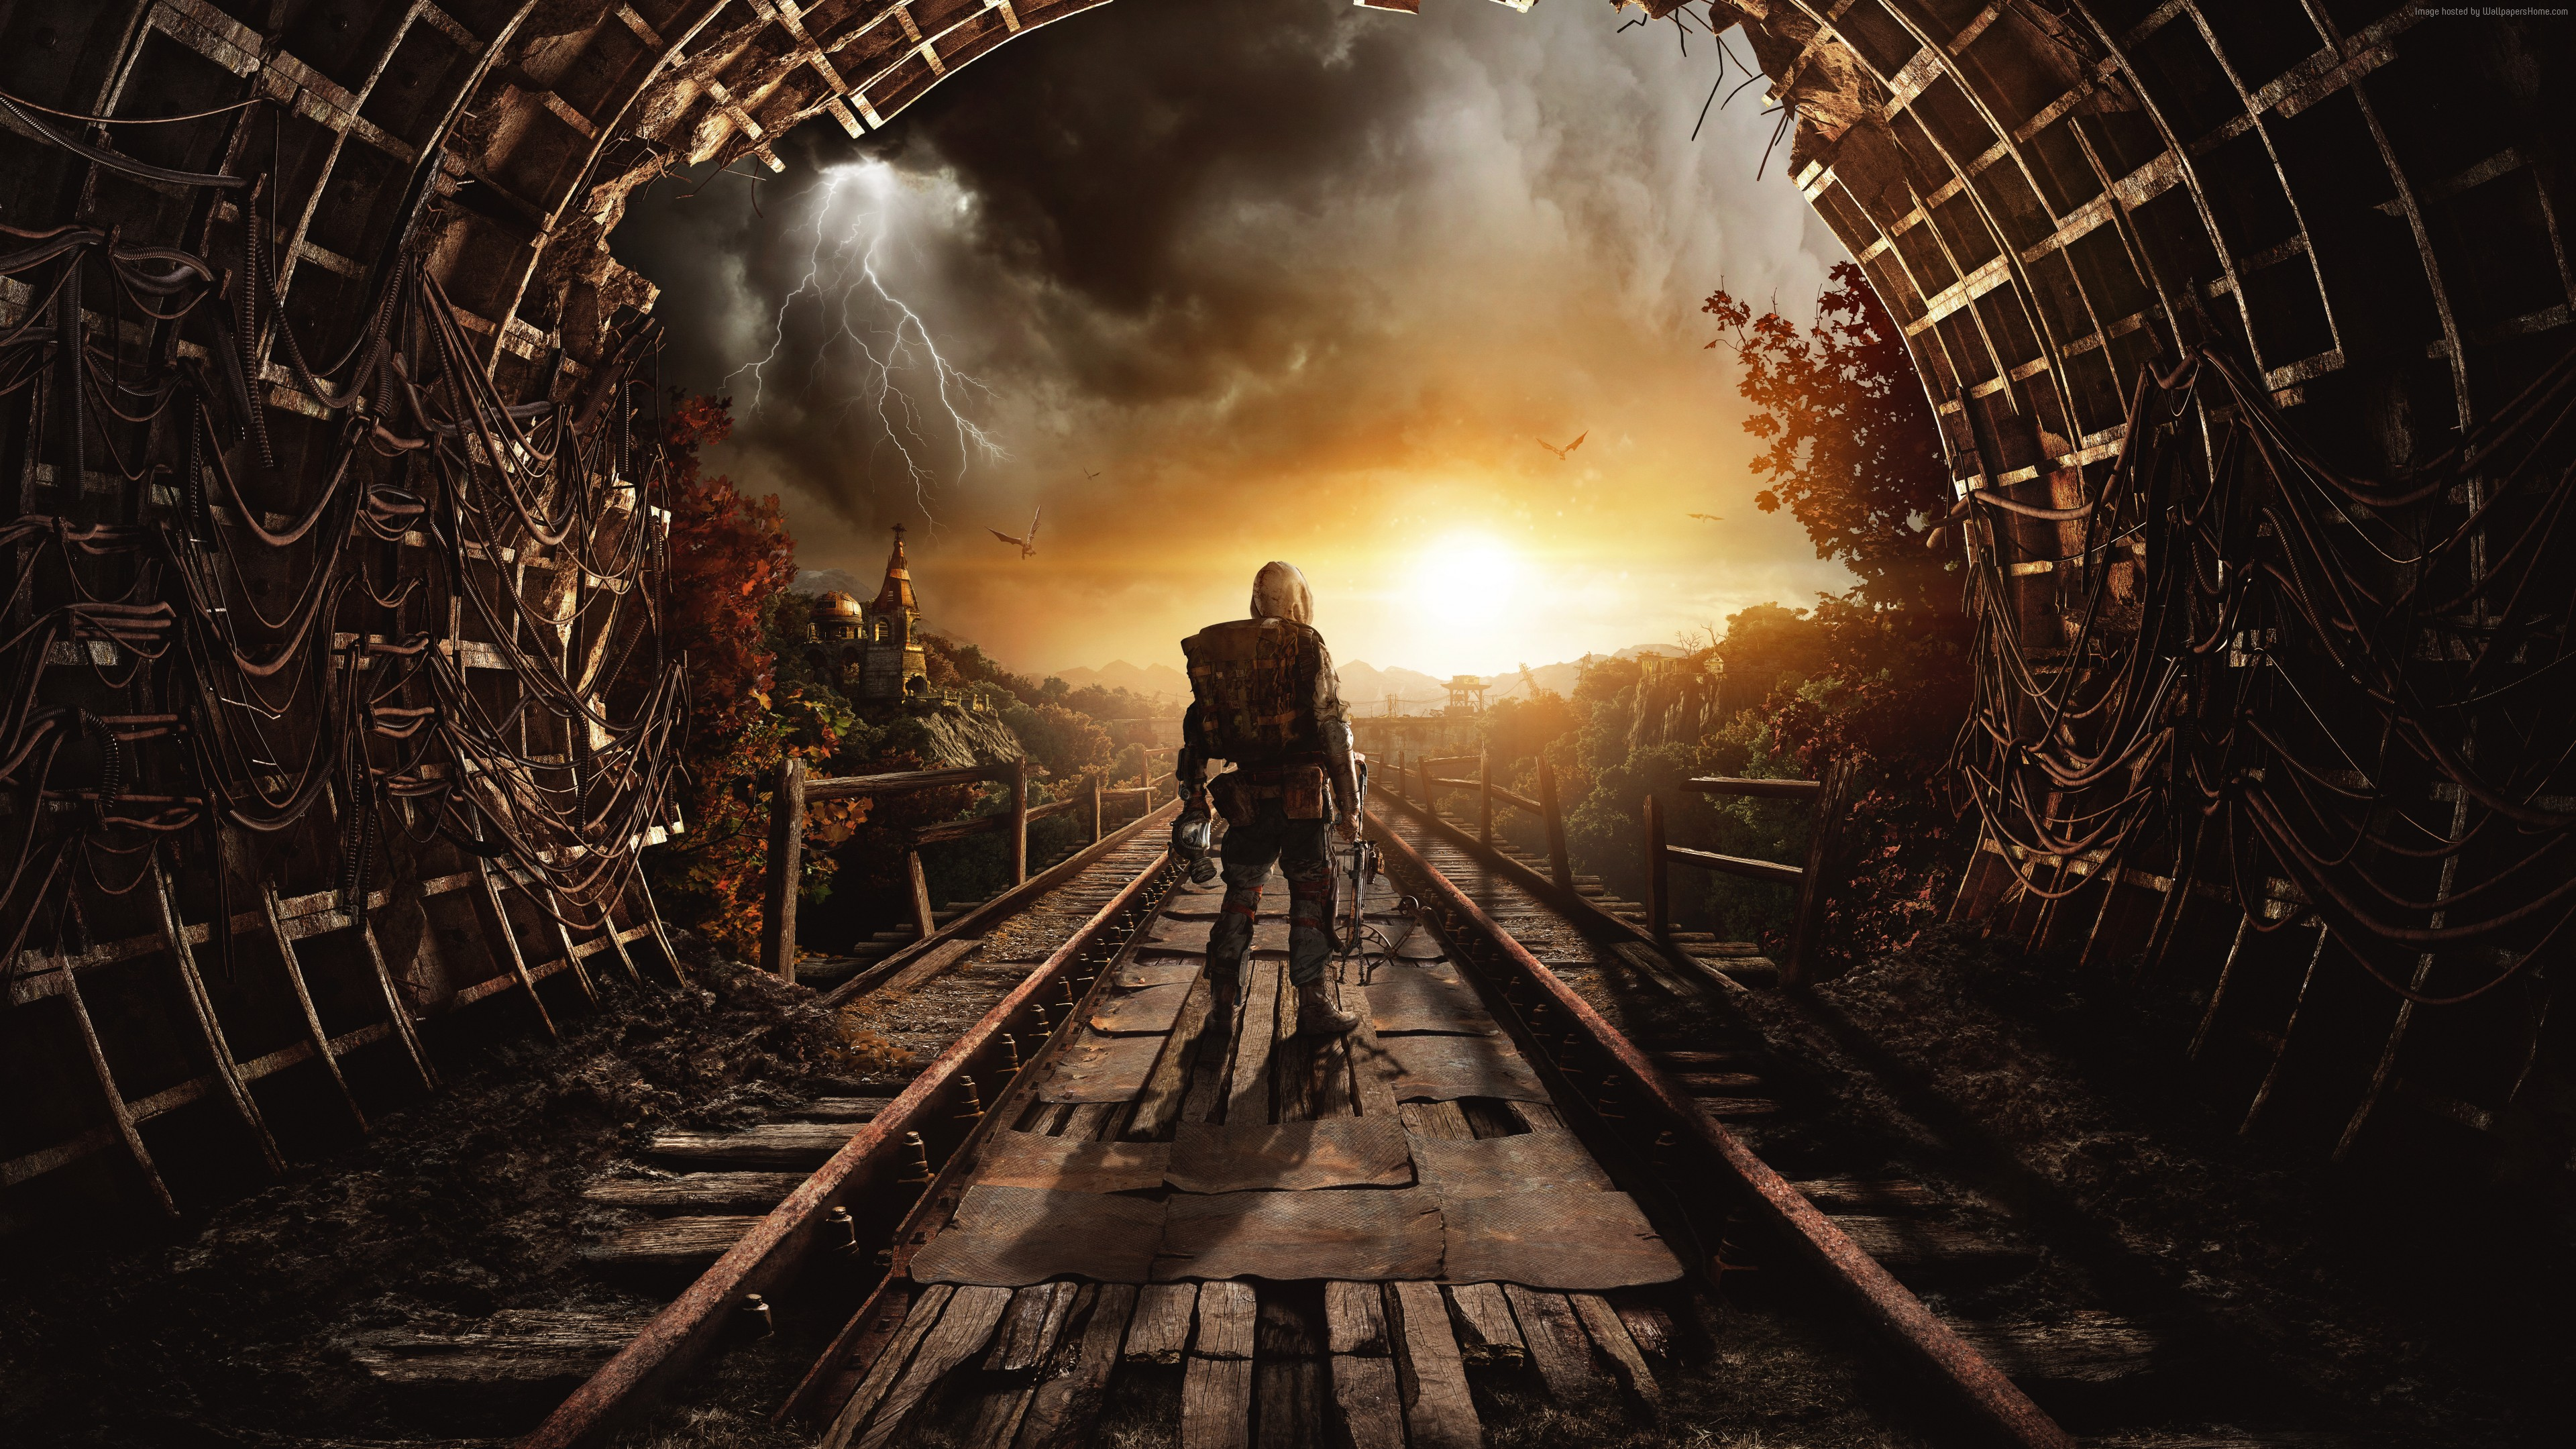 Wallpaper Metro Exodus, Autumn, Gamescom 2018, artwork, poster, 7K, Games